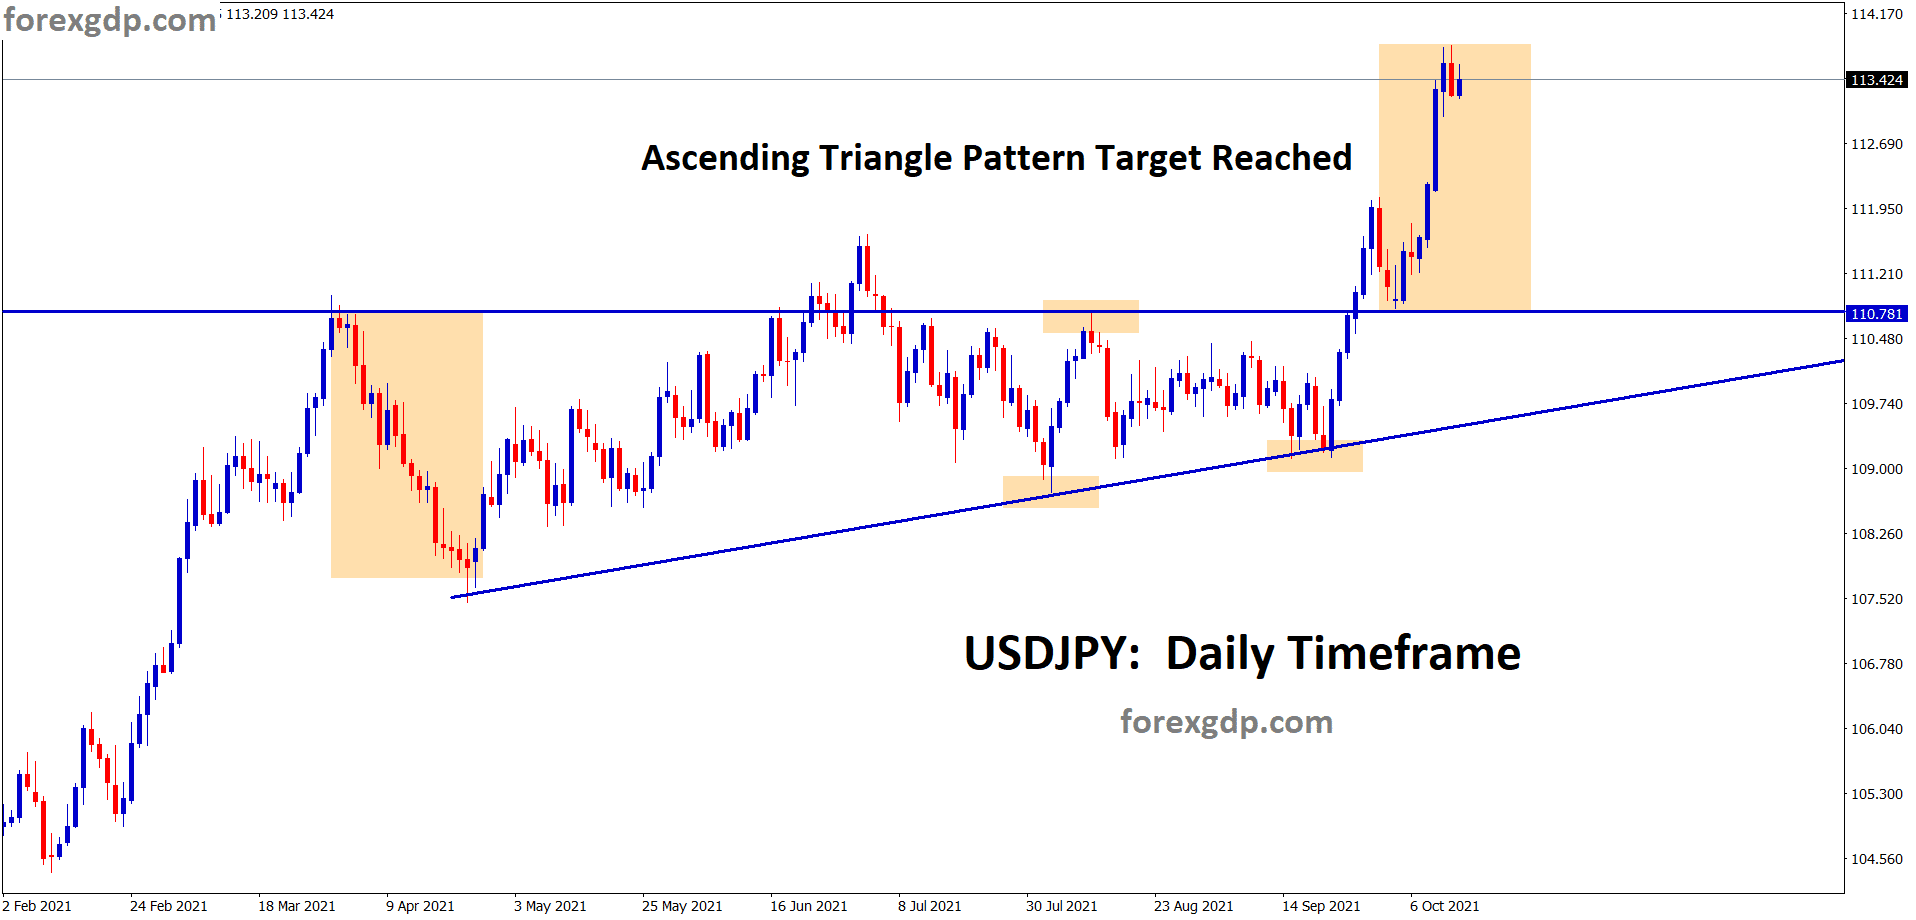 USDJPY has reached the ascending triangle pattern breakout target wait for some correction on USDJPY